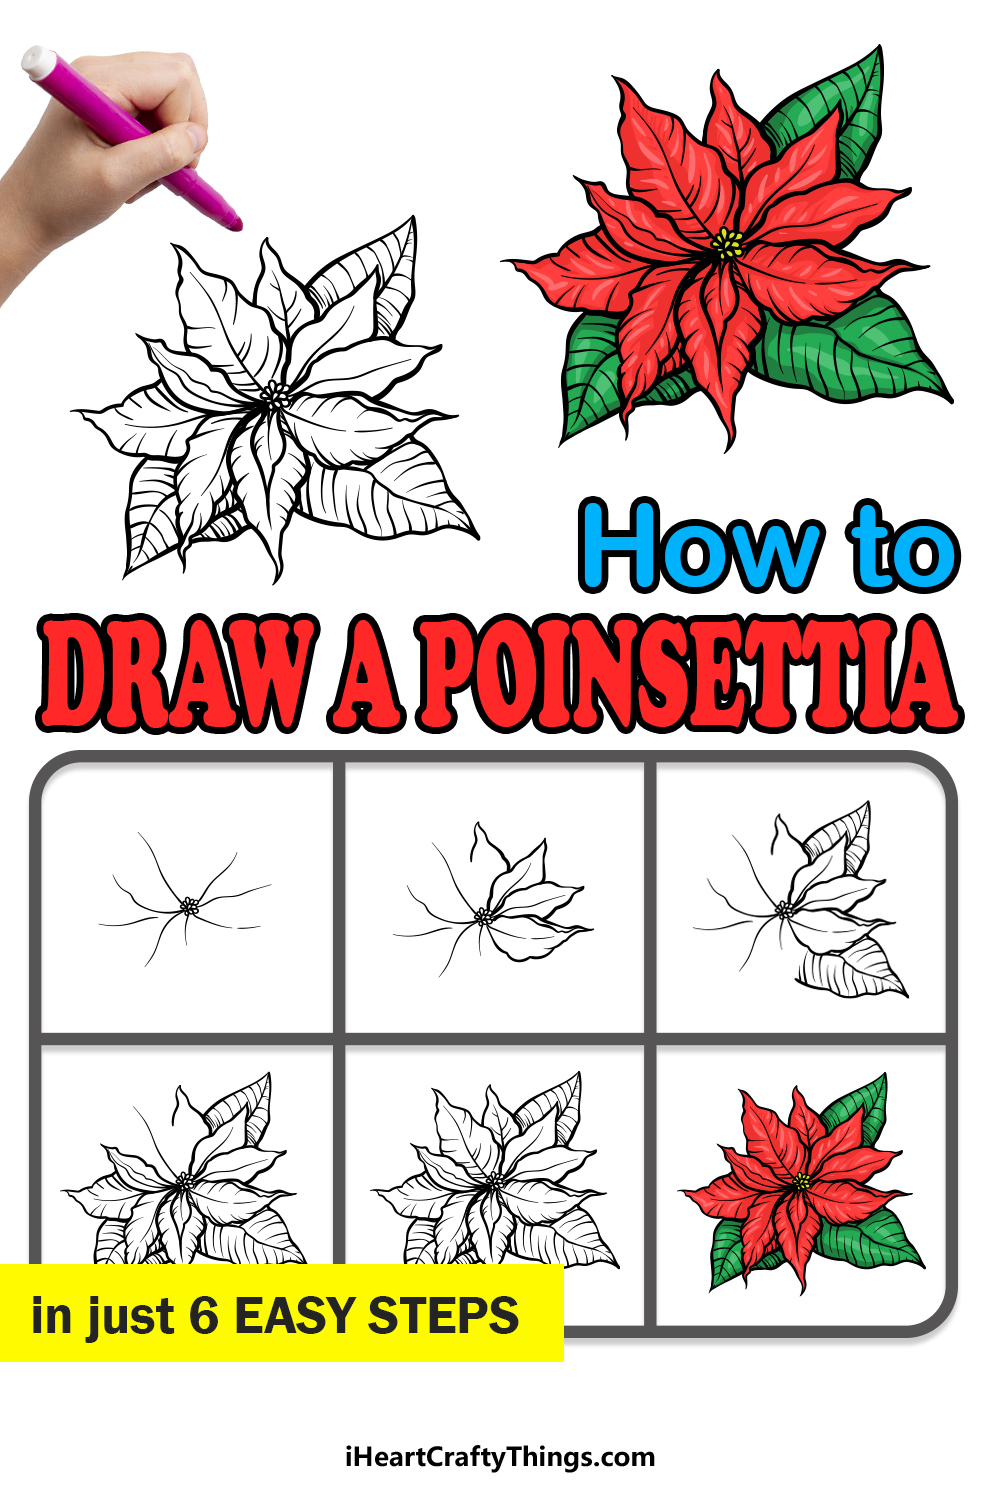 how to draw a Poinsettia in 6 easy steps